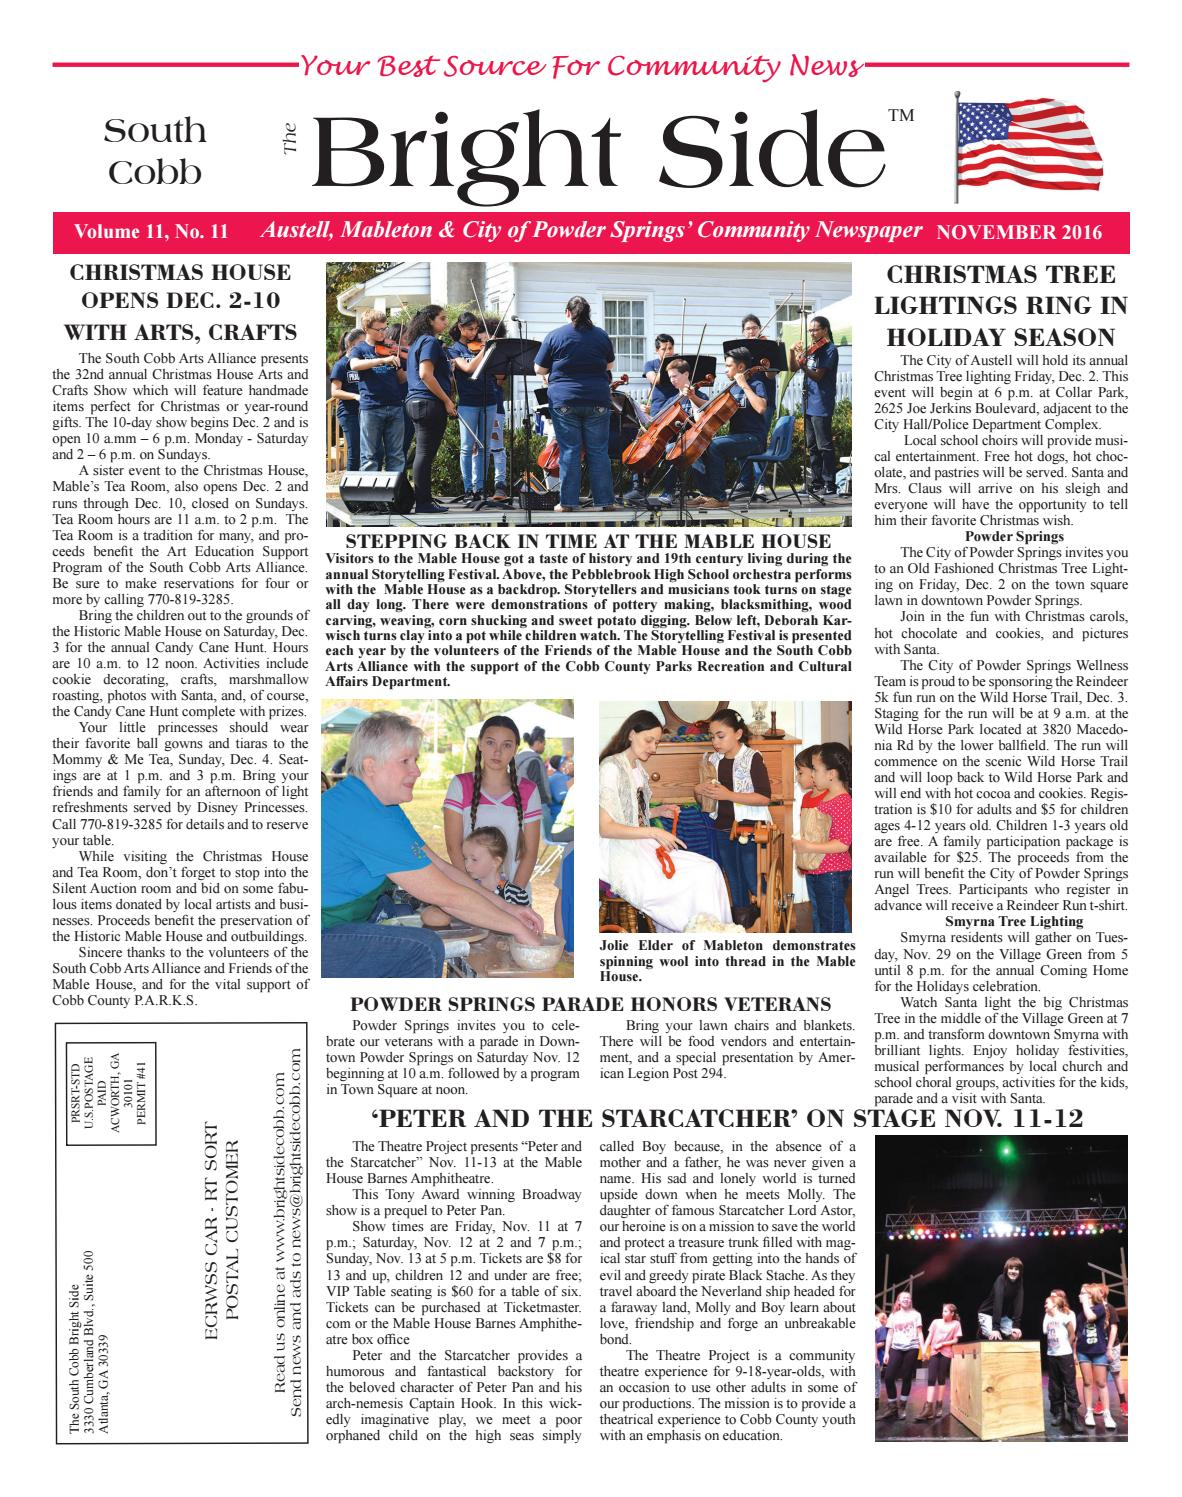 South cobb bright side november 2016 by allan lipsett issuu 1betcityfo Images